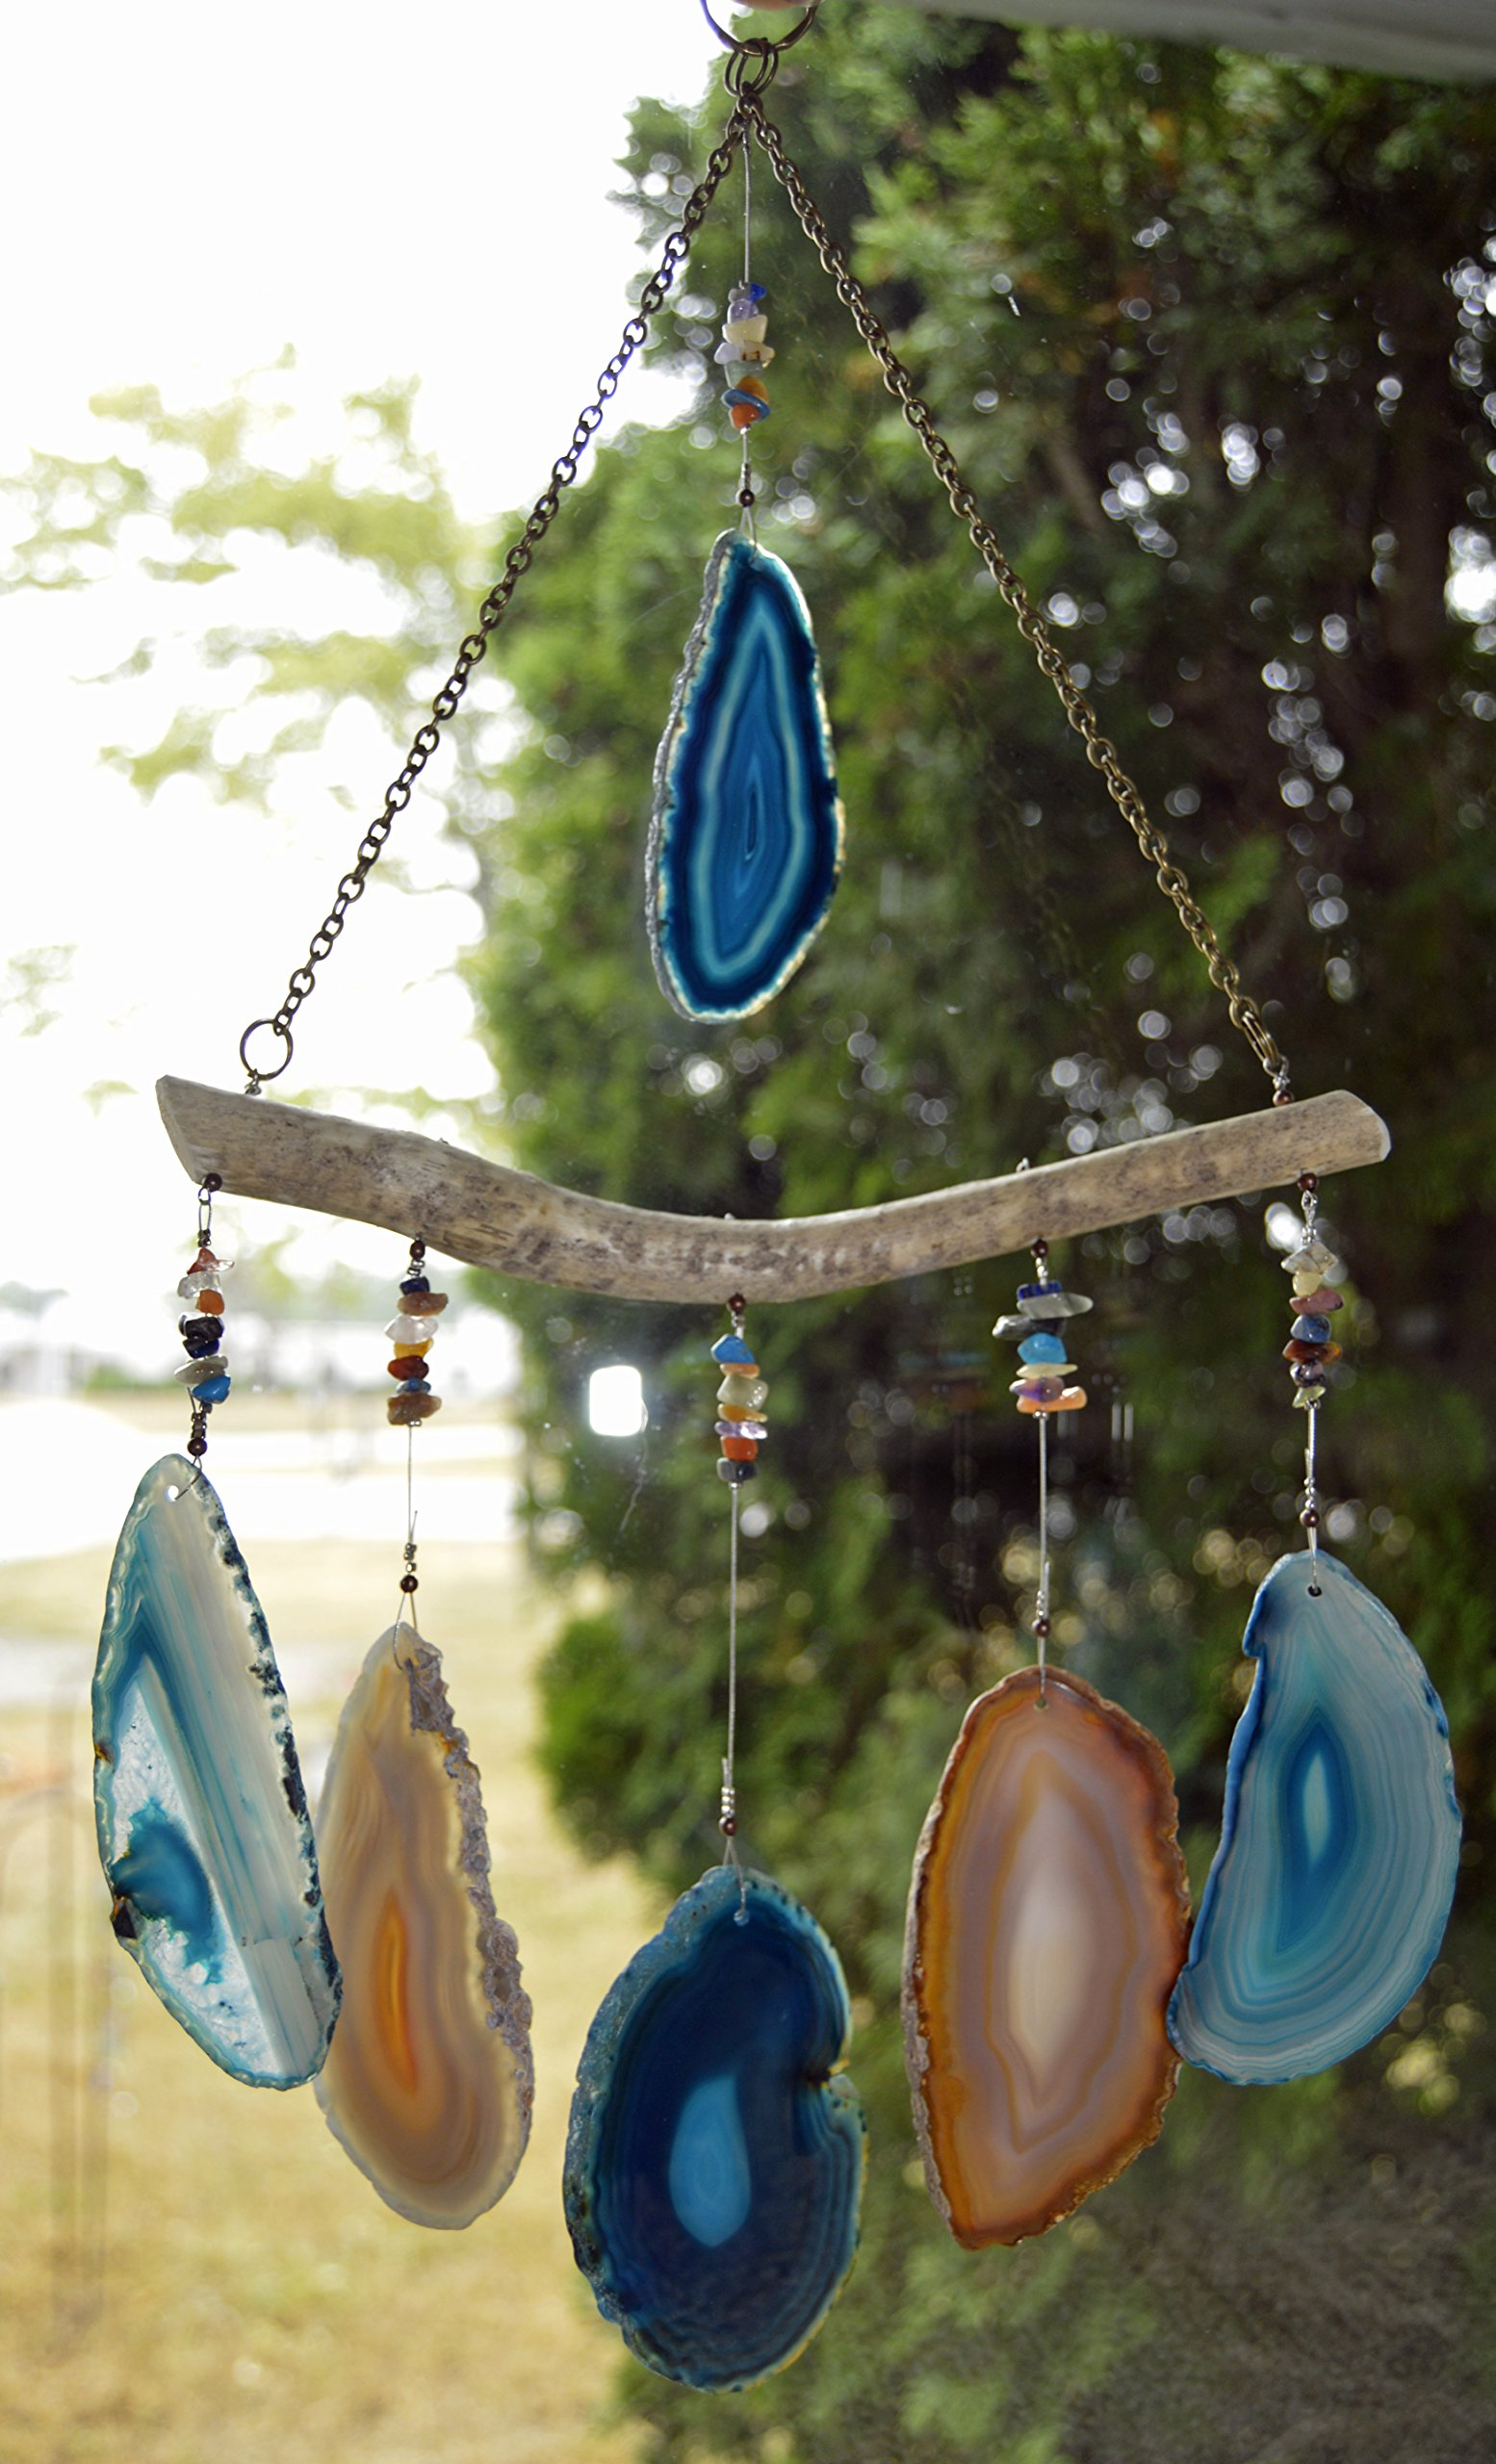 amber and teal/aqua slice Agate geode wind chime windchime sun catcher wind chime mobile Hanging from Lake Superior Driftwood hanging window decor suncatcher outdoor ornament patio